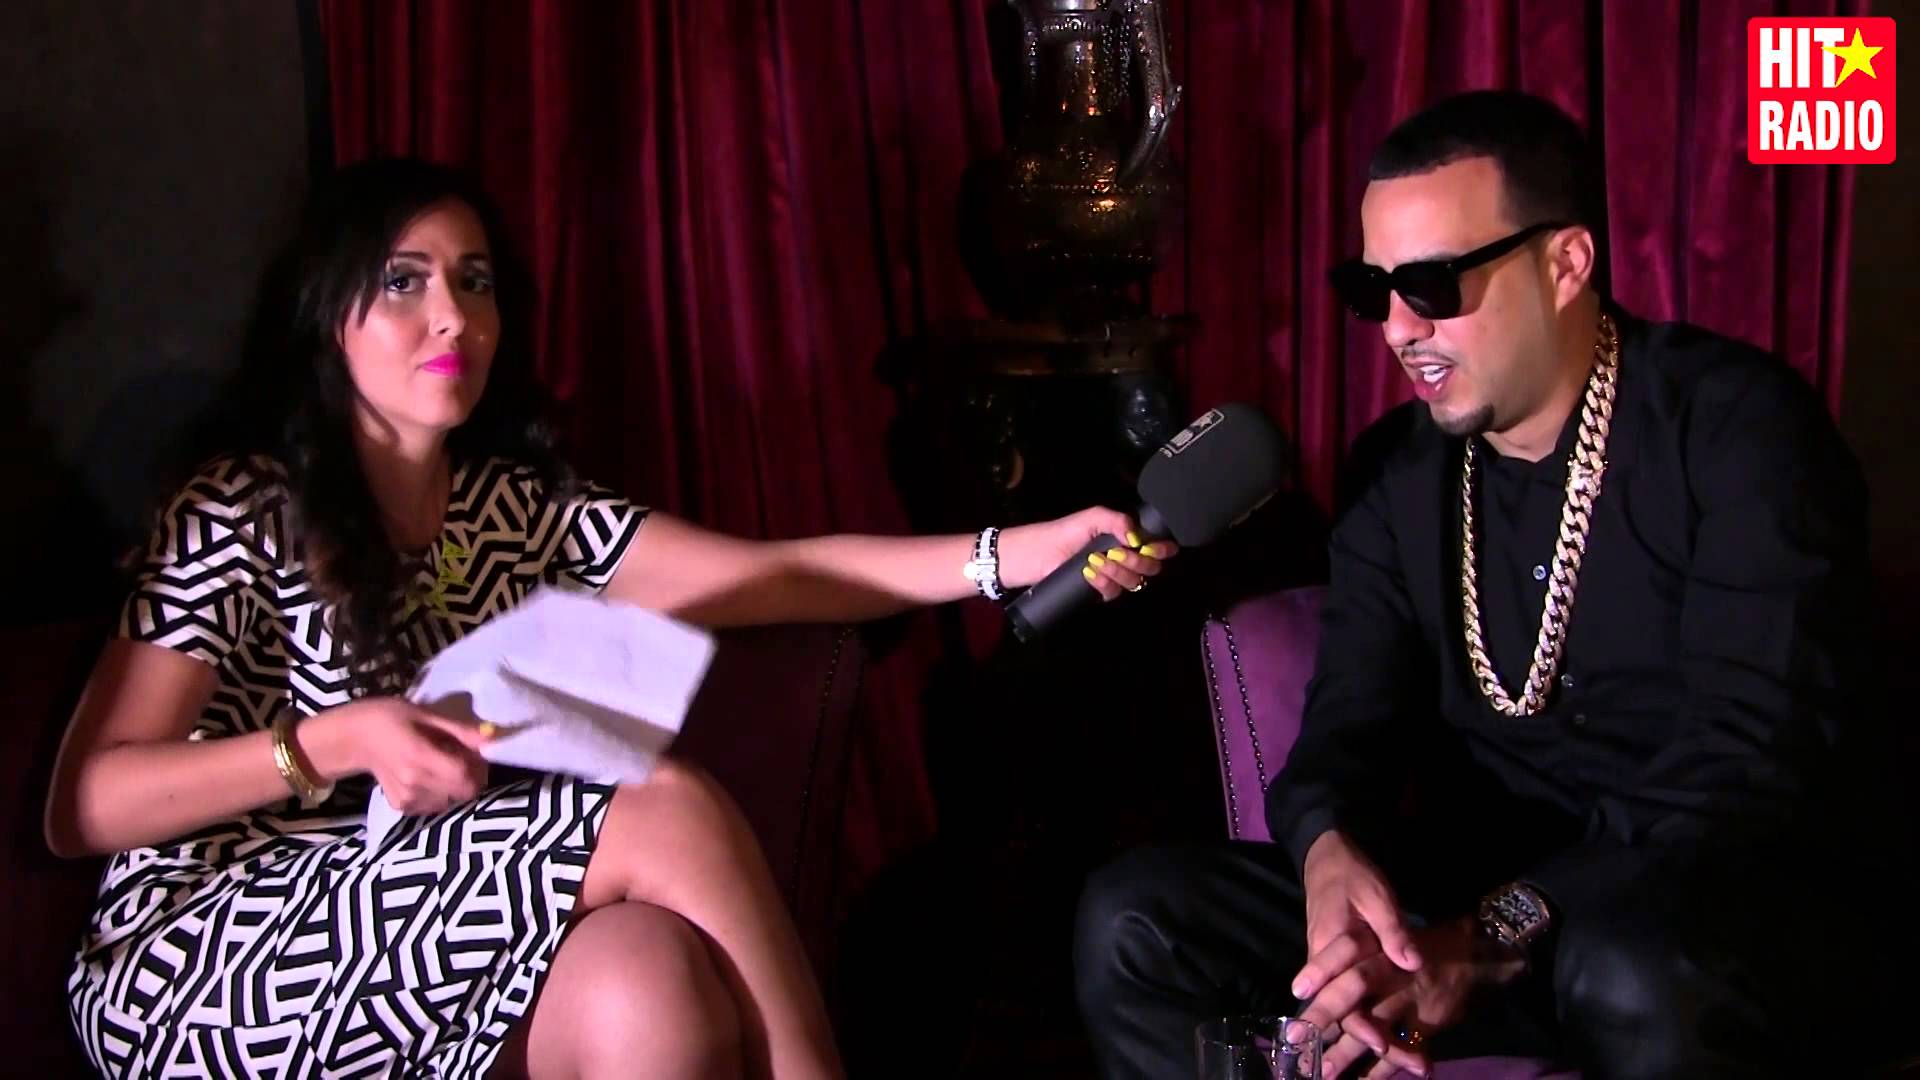 French montana gives a exclusive interview with Moroccan radio channel HitRadio.